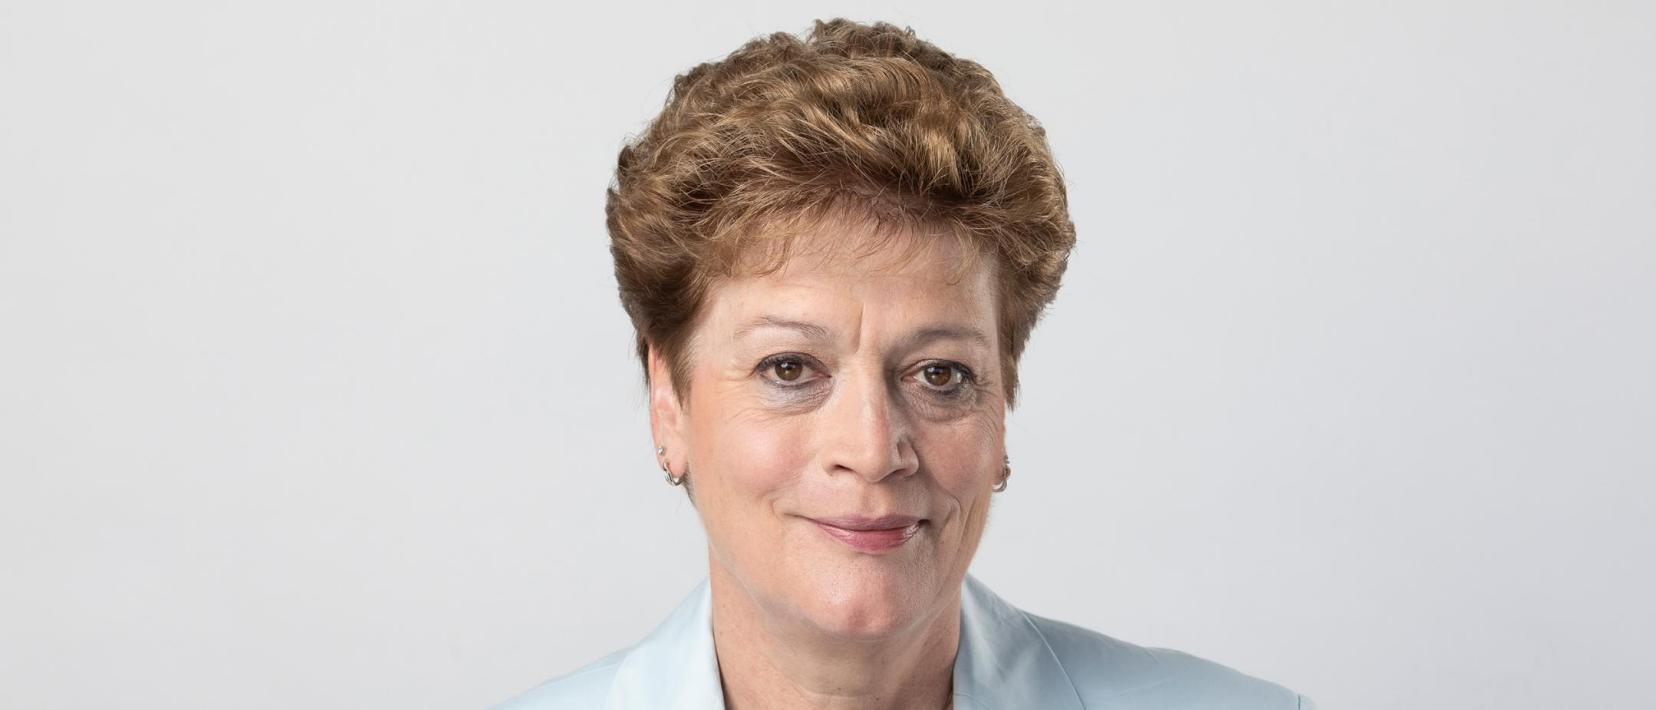 Silvia Steiner, Member of the Government Council